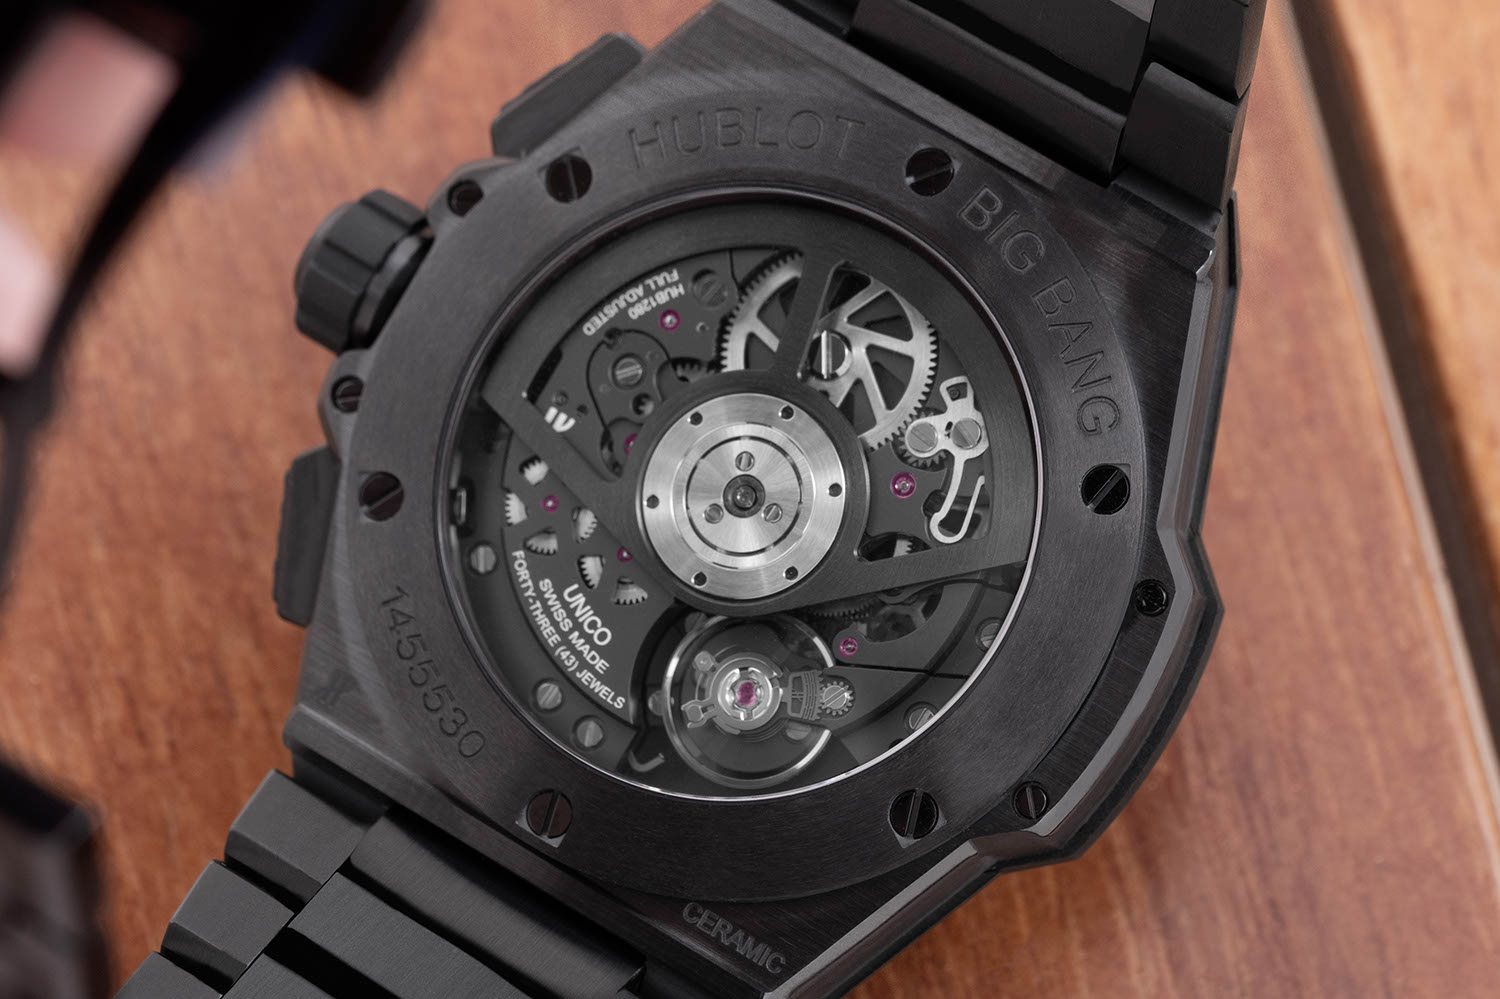 Hublot Big Bang Integral is powered by the self-winding HUB1280 UNICO Manufacture movement (Image © Revolution)